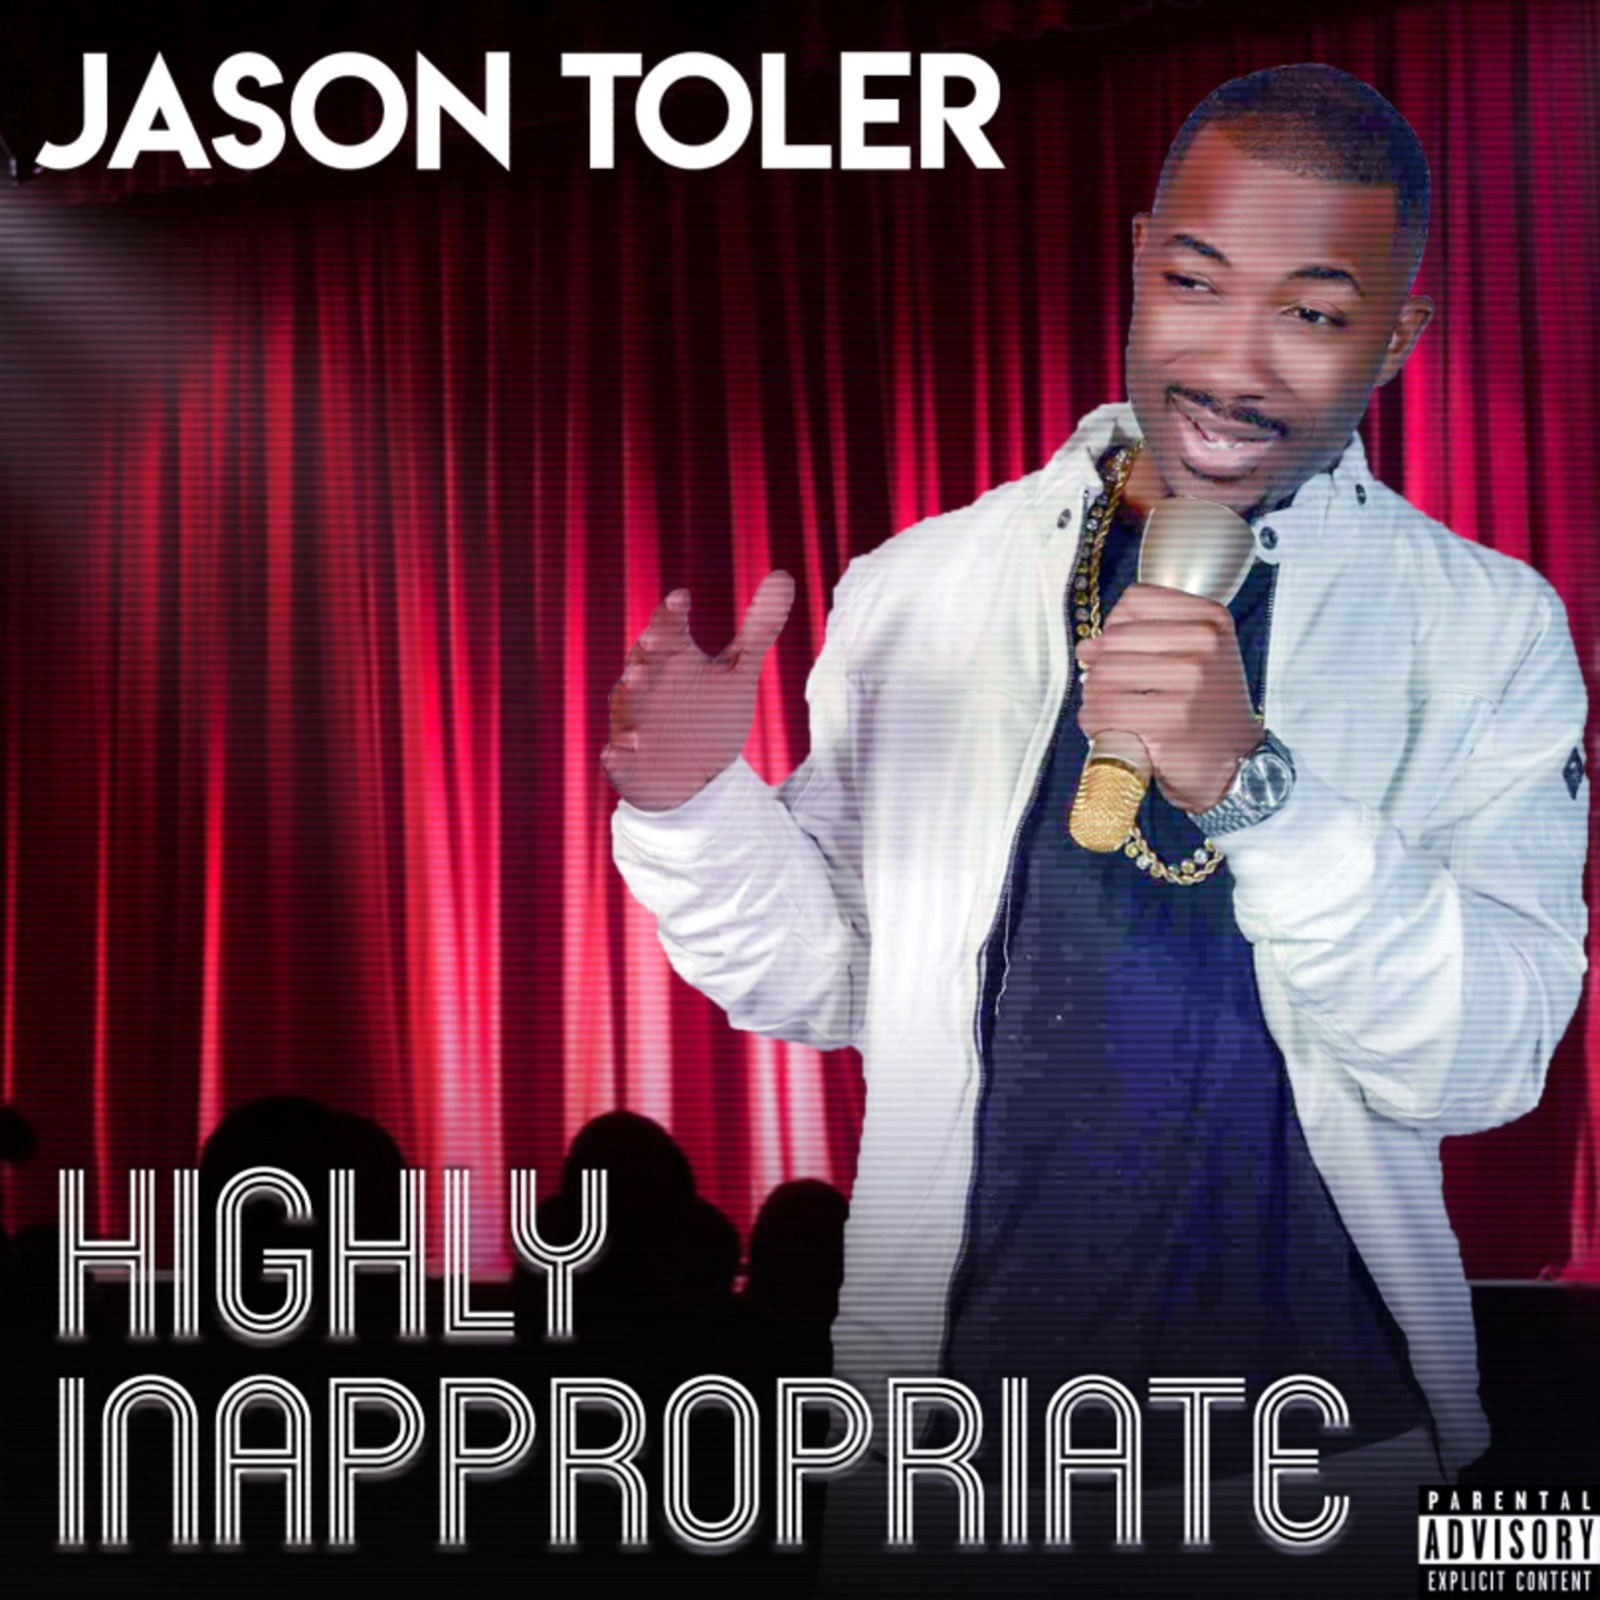 Jason Toler (Highly Inappropriate (The Album))